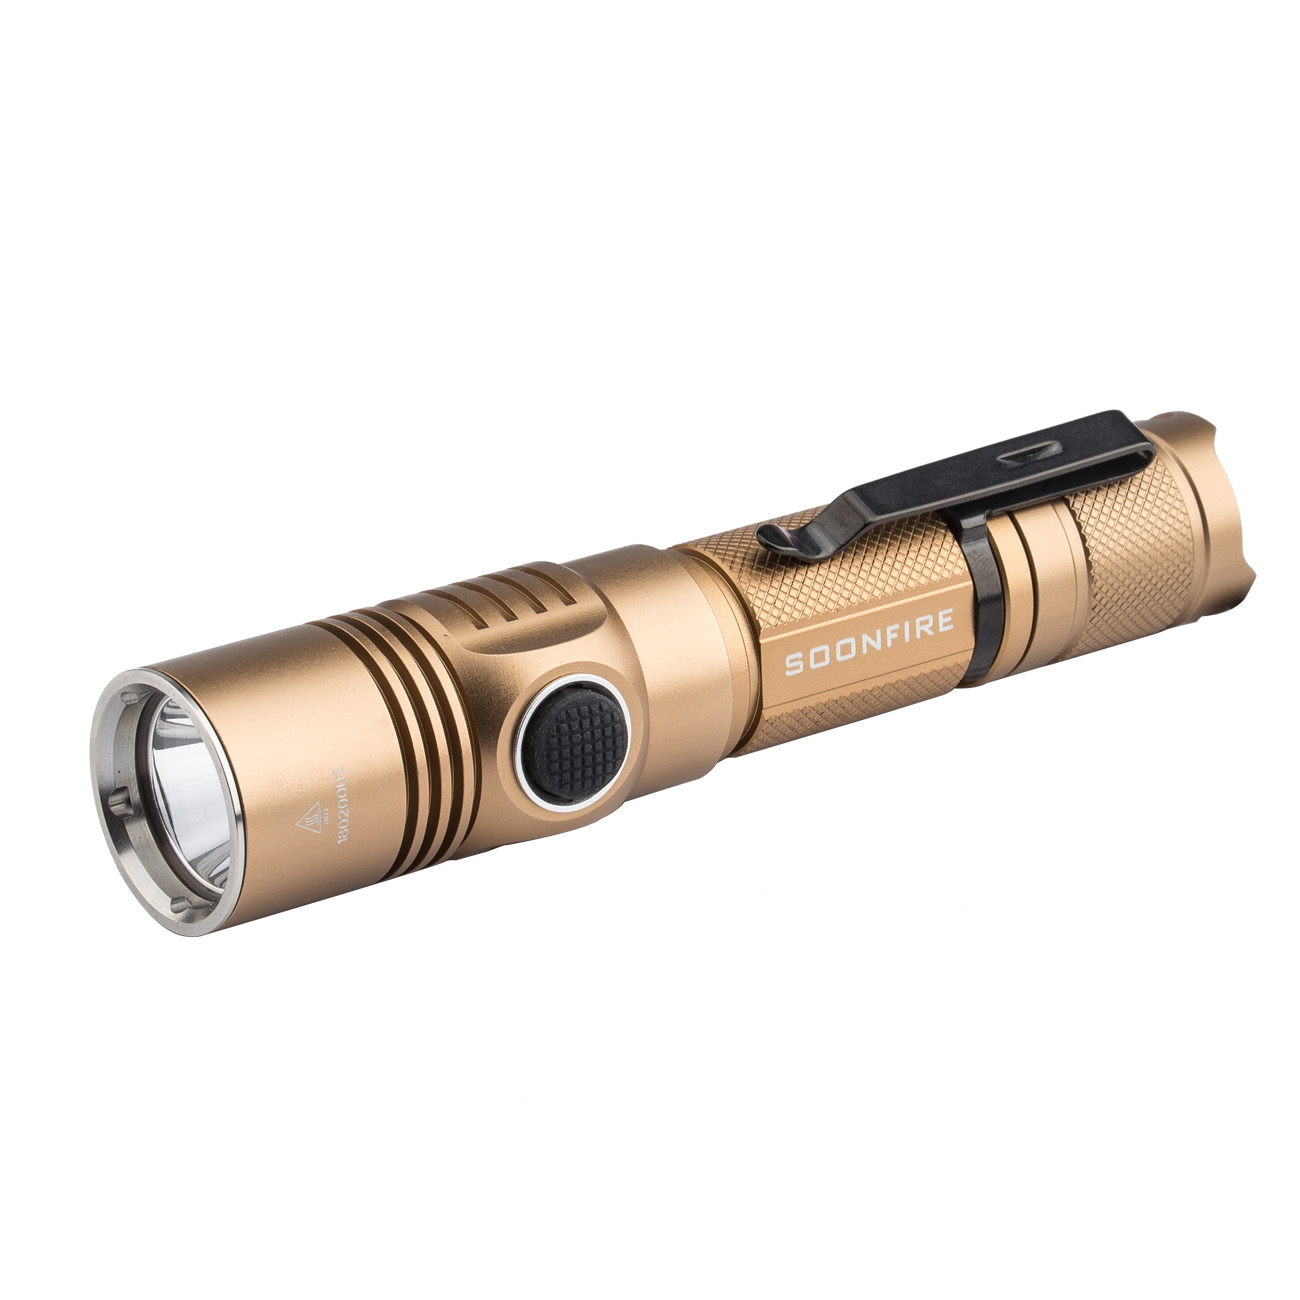 Soonfire DS33 Tactical Flashlight